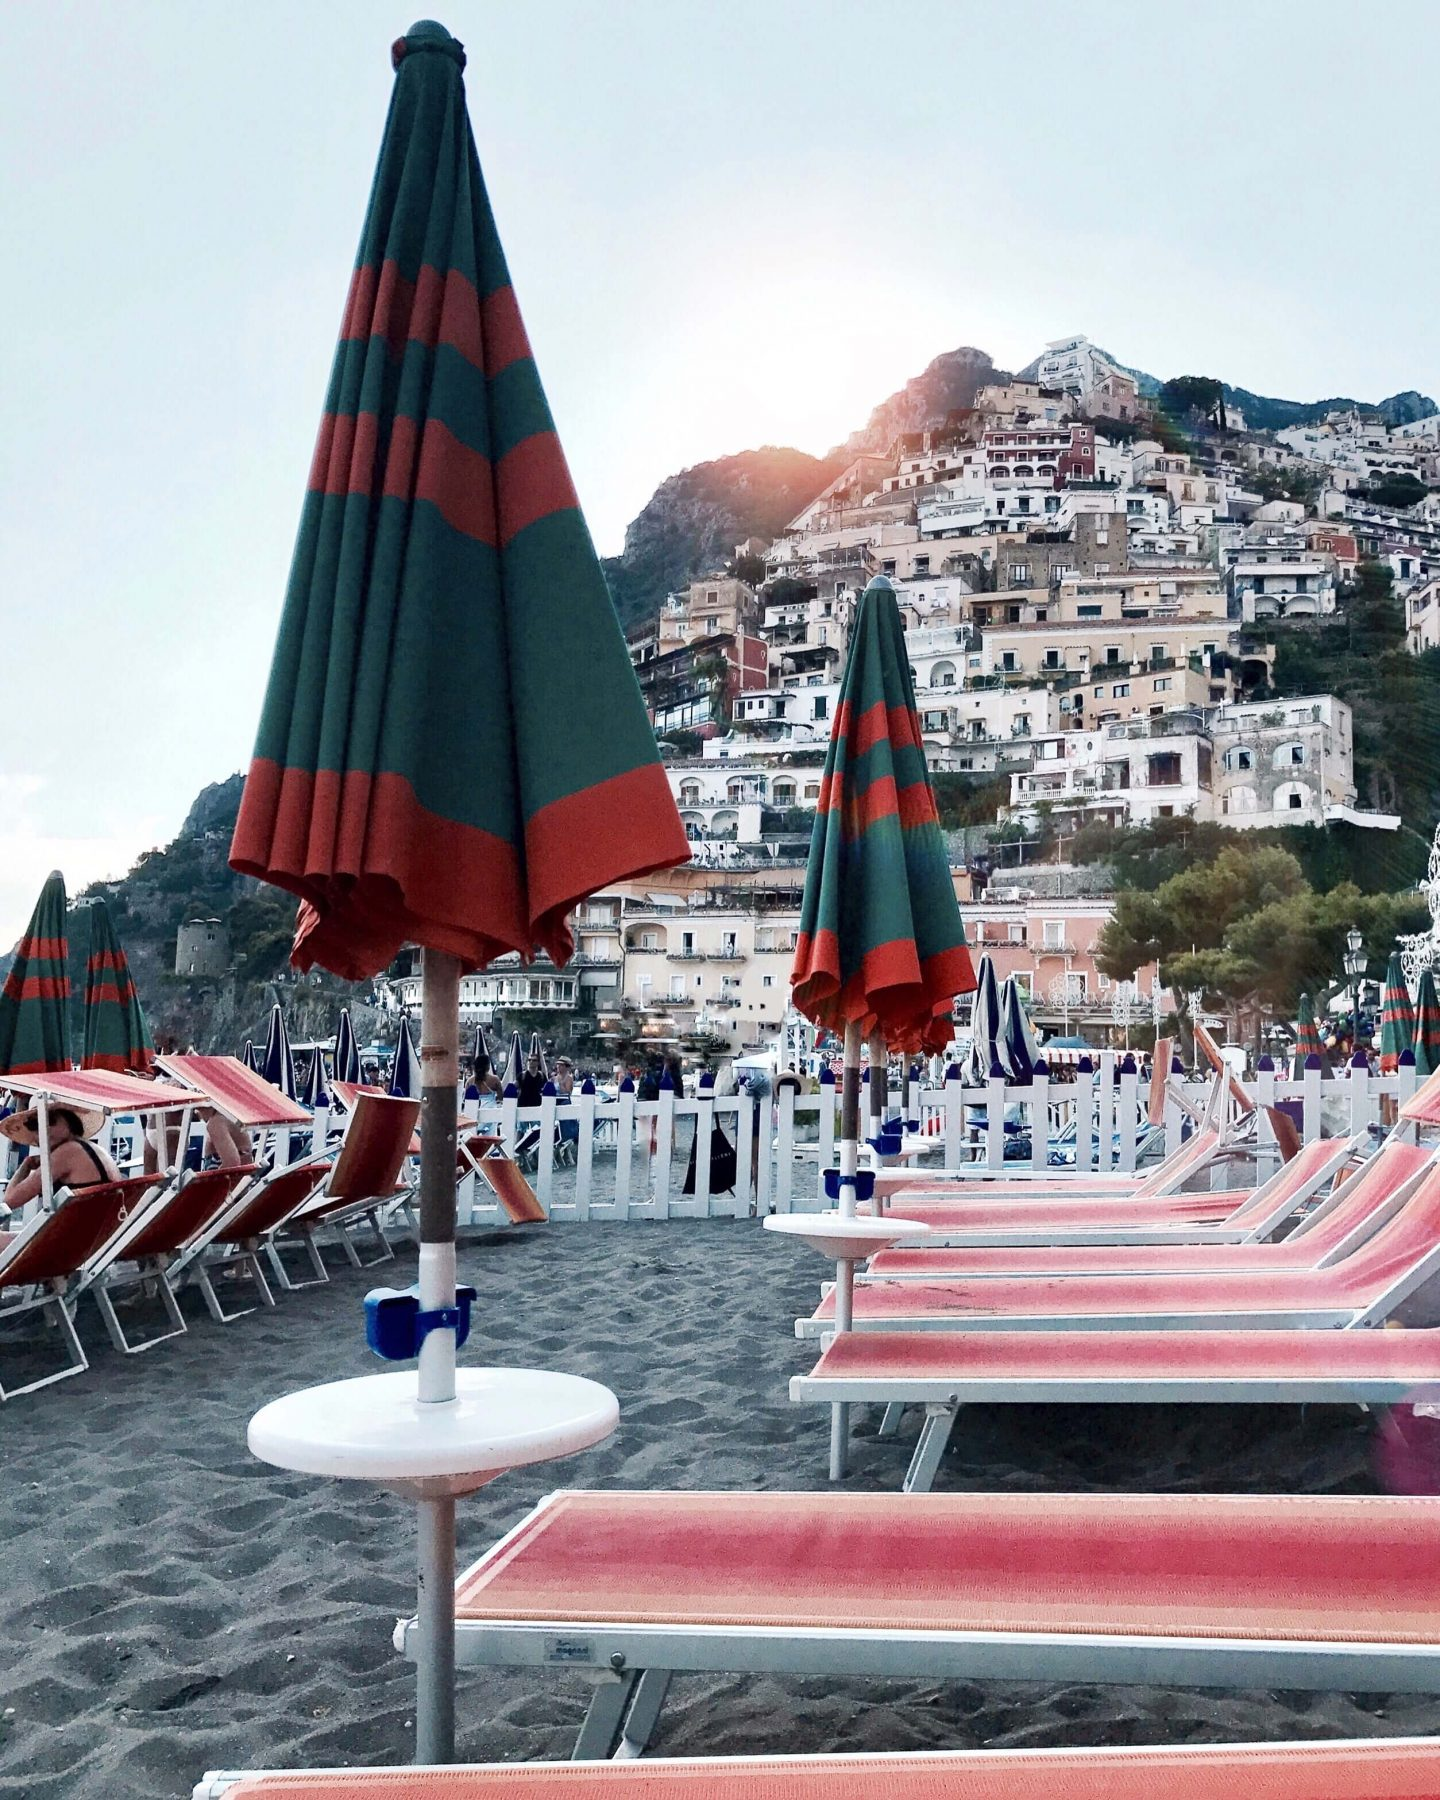 City guide Italie Côte Amalfitaine Positano Amalfi Maiori L'atelier d'al blog lifestyle mode DIY travel